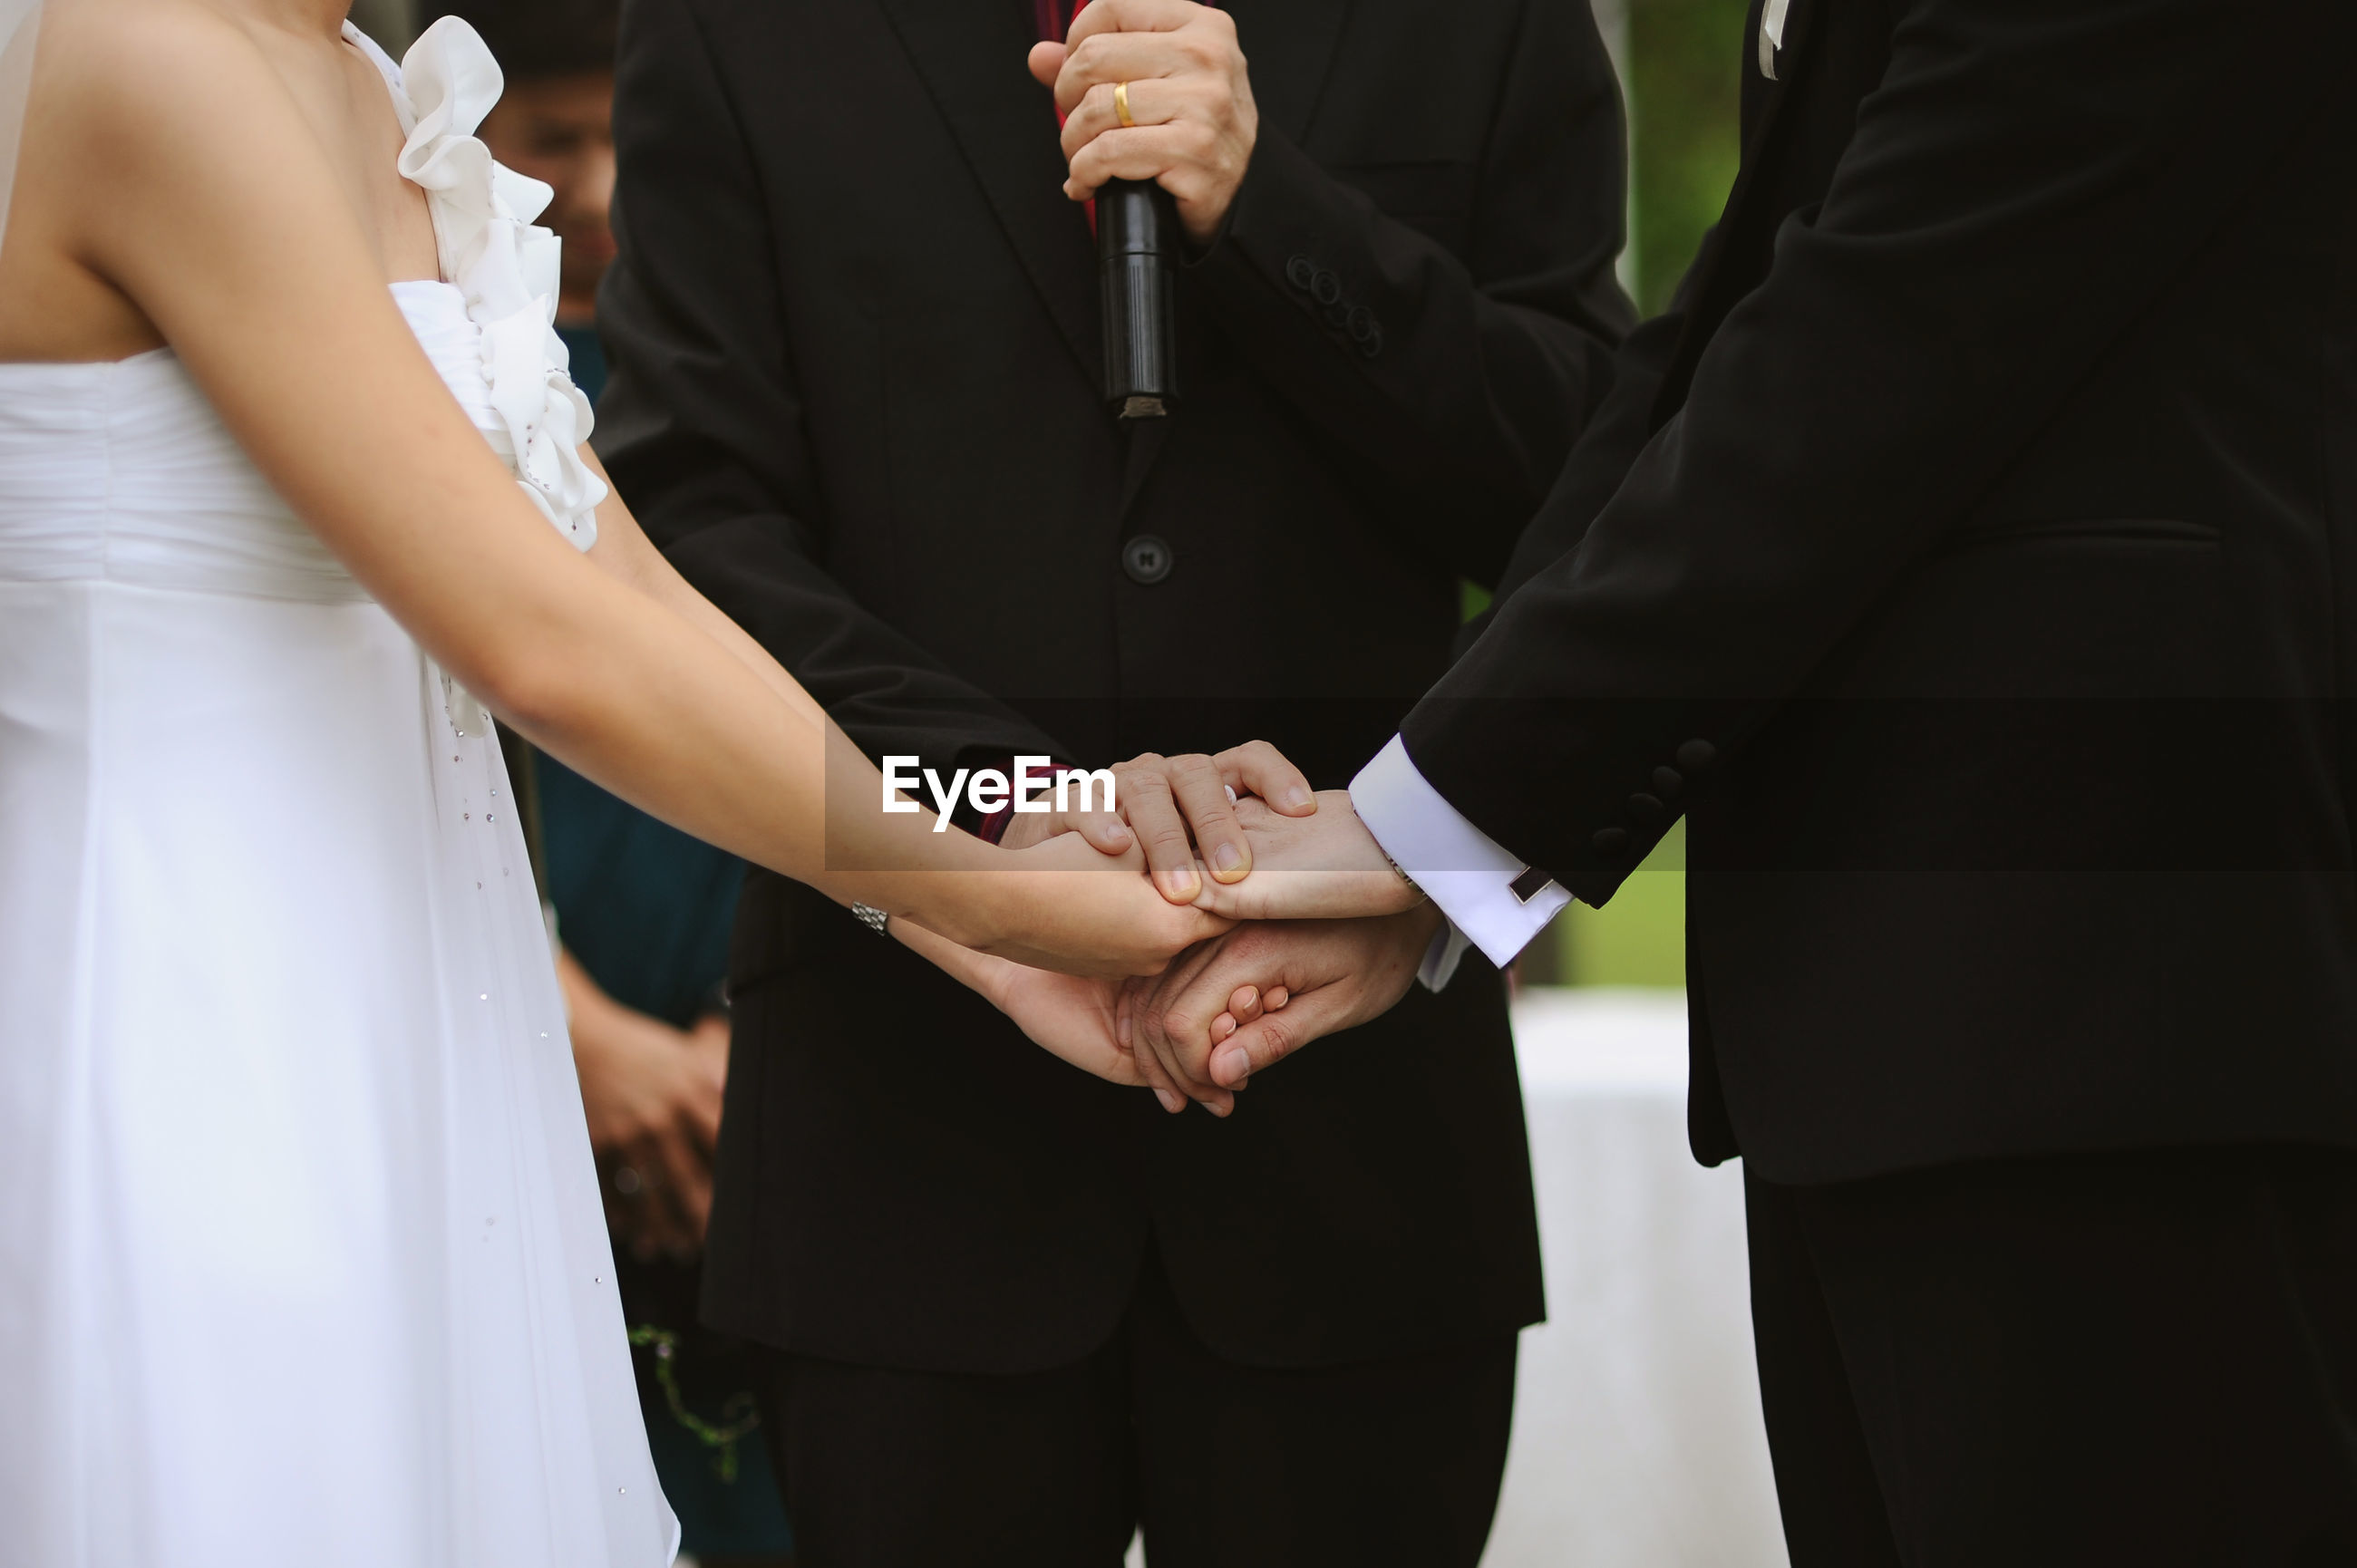 Midsection of priest holding hands of couple during weeding